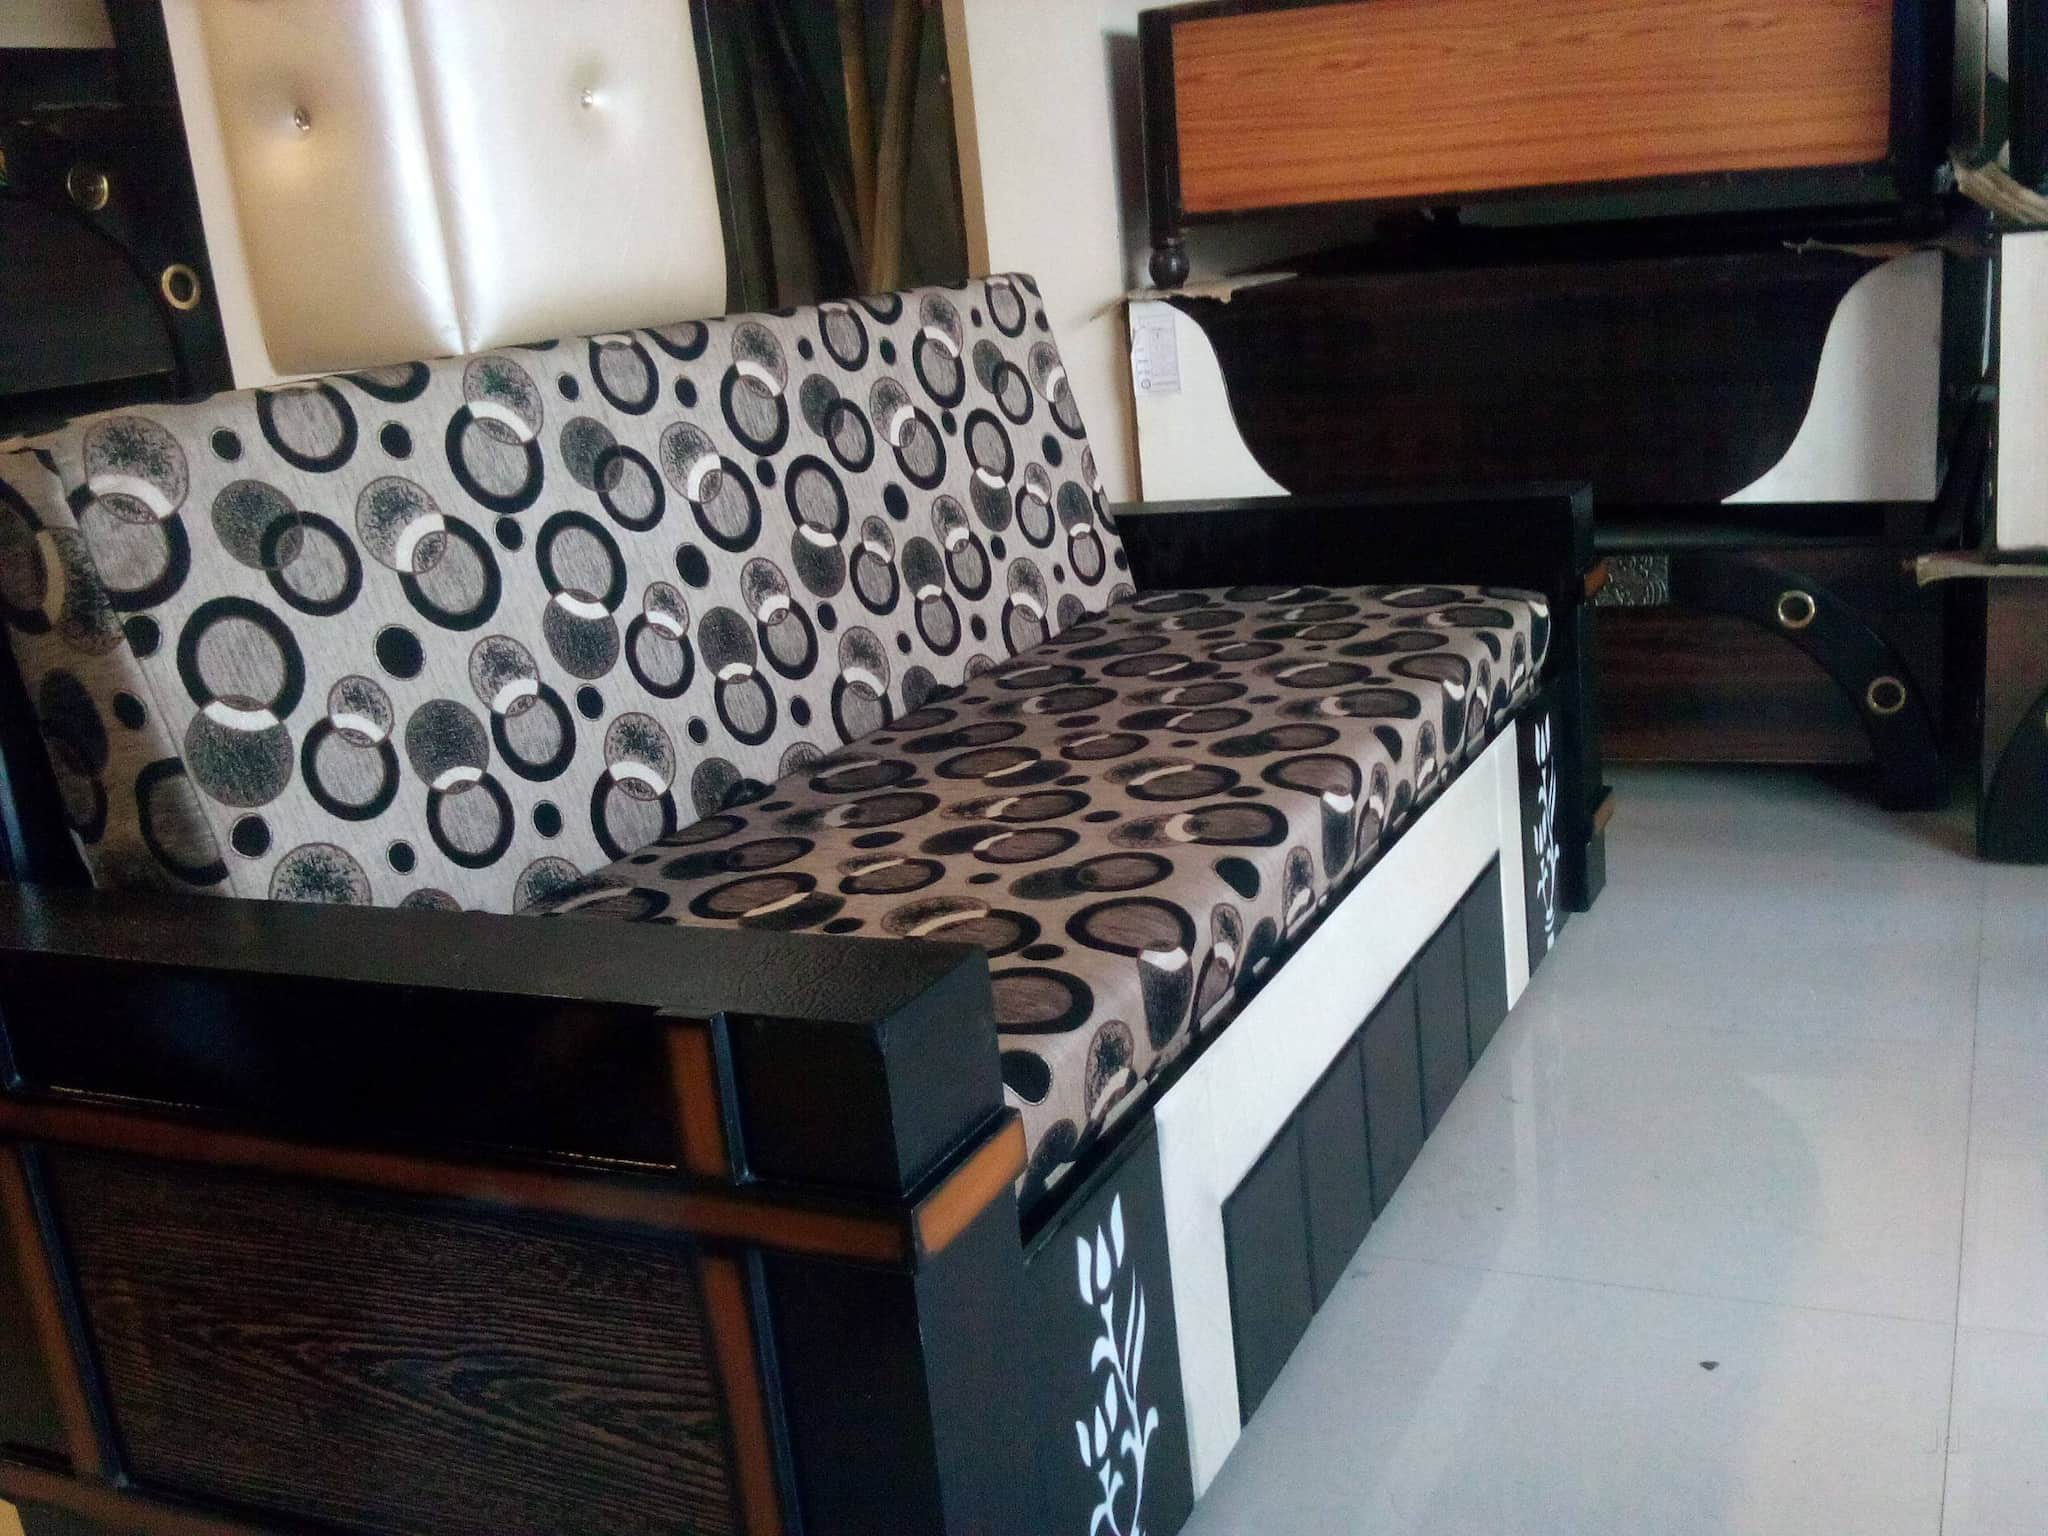 Laxmi Furniture Rajendra Nagar Furniture Dealers in Indore